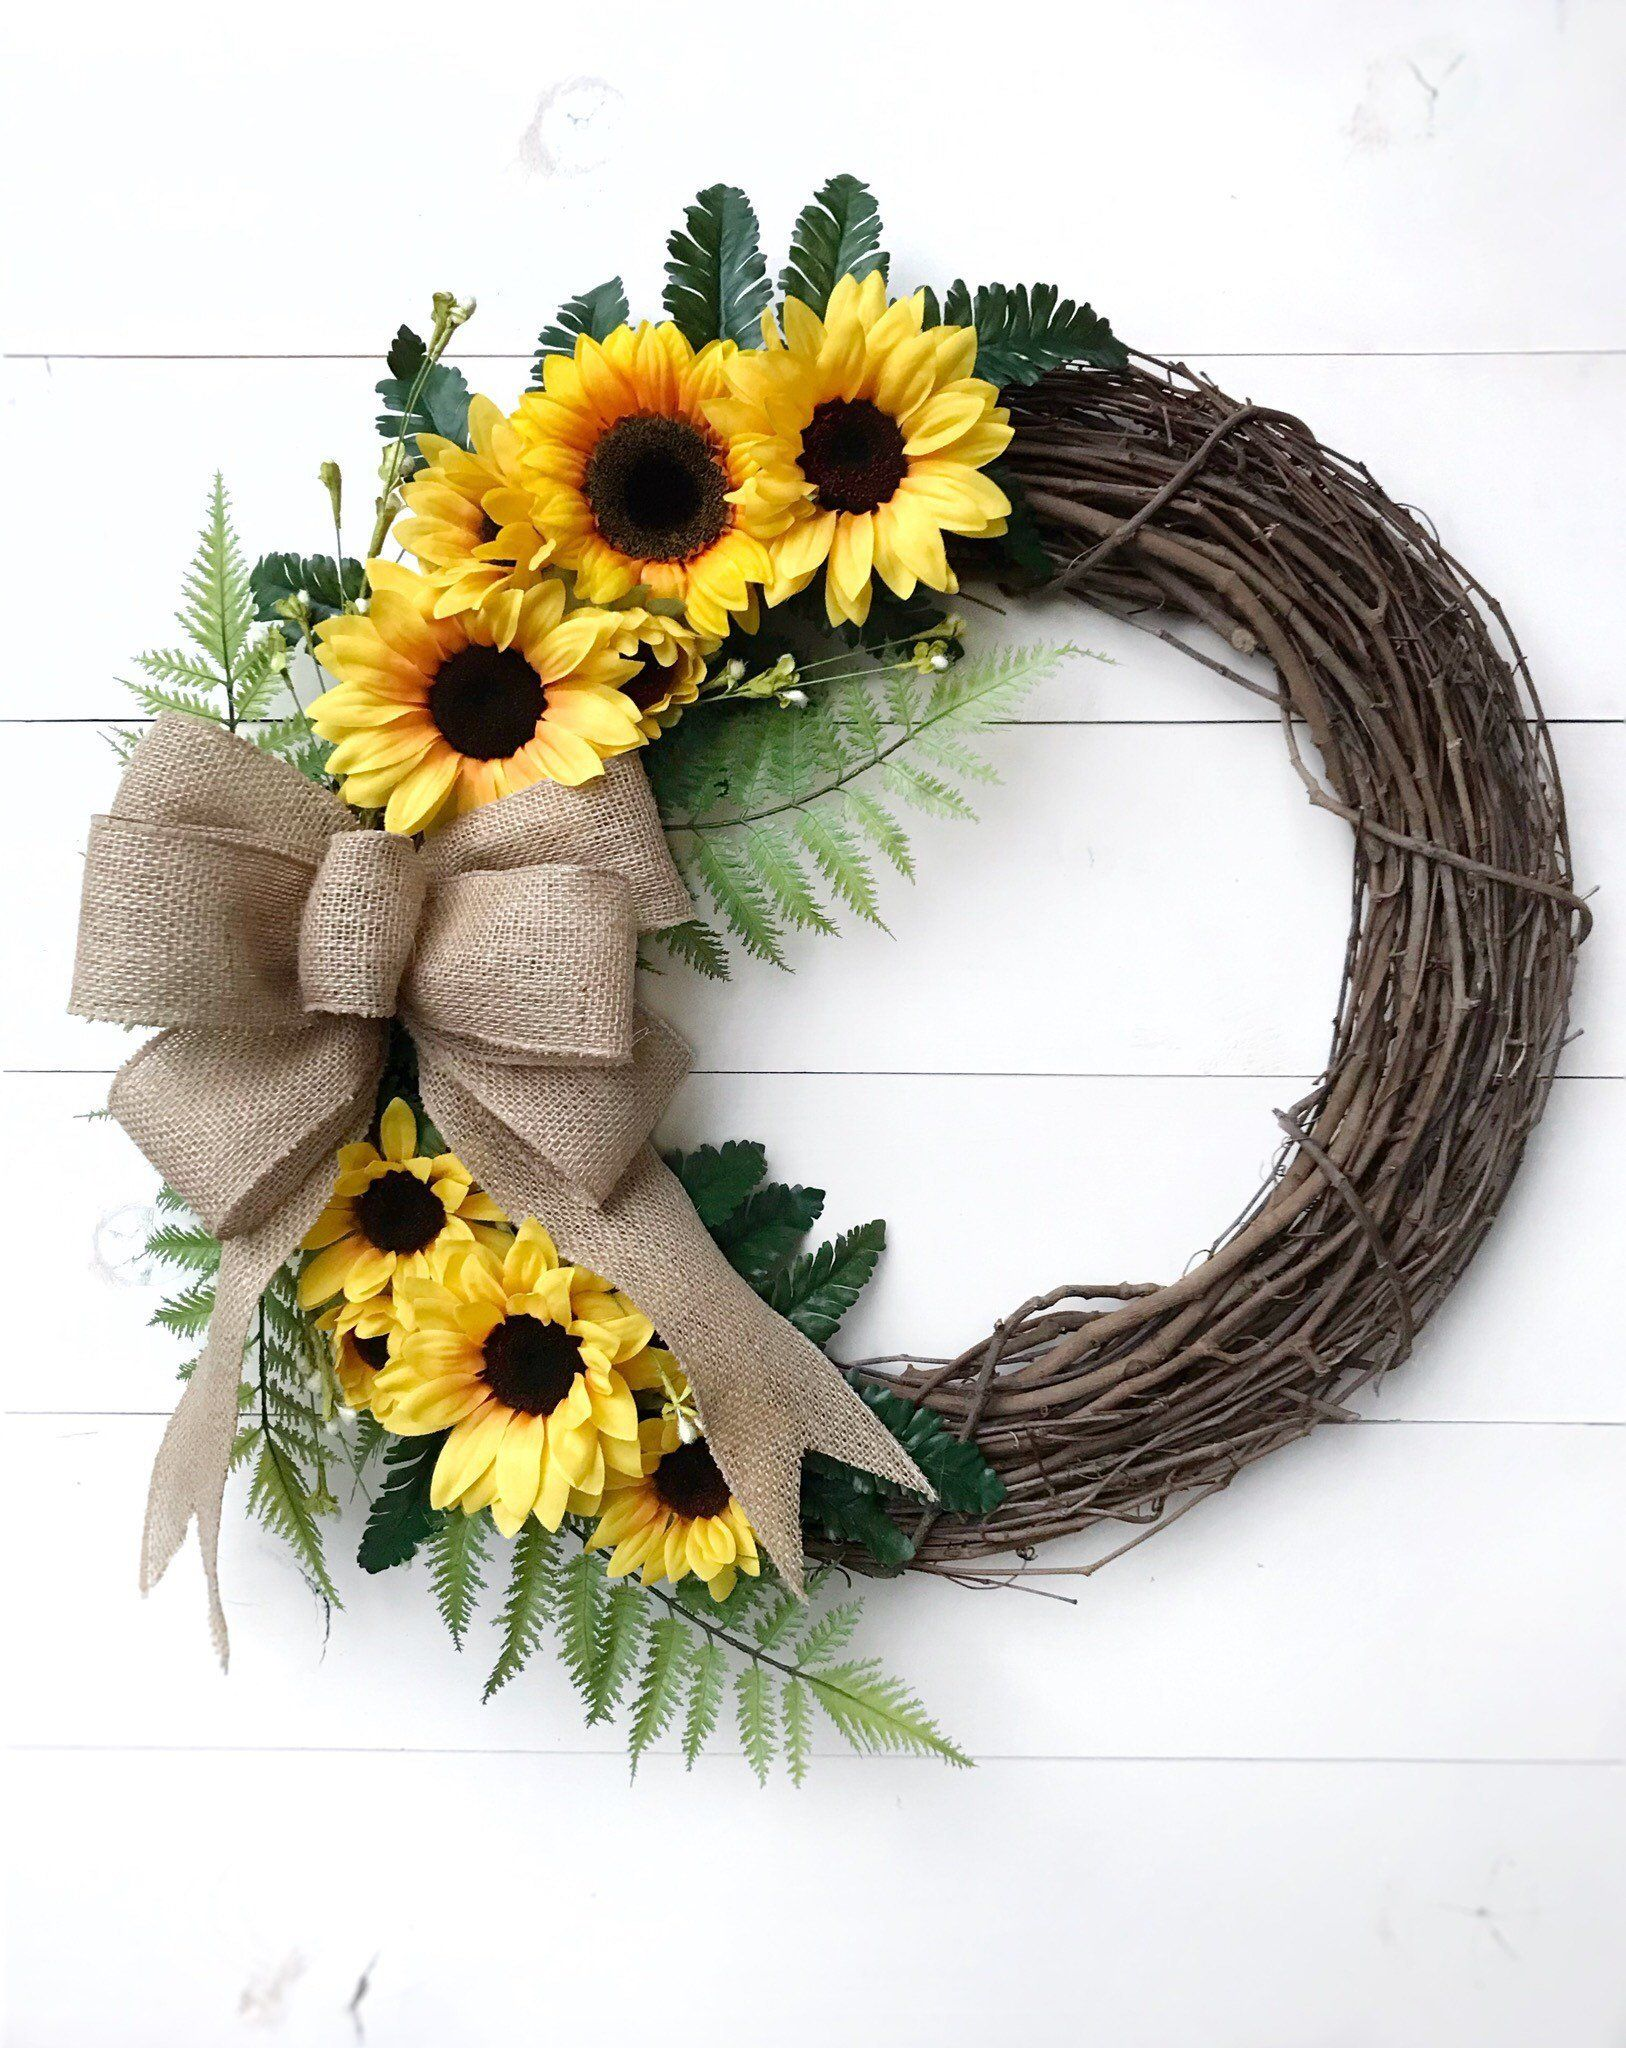 Photo of Sunflower wreath with sackcloth bow Door wreath with sunflowers All year round front door wreath | Peasant wreath